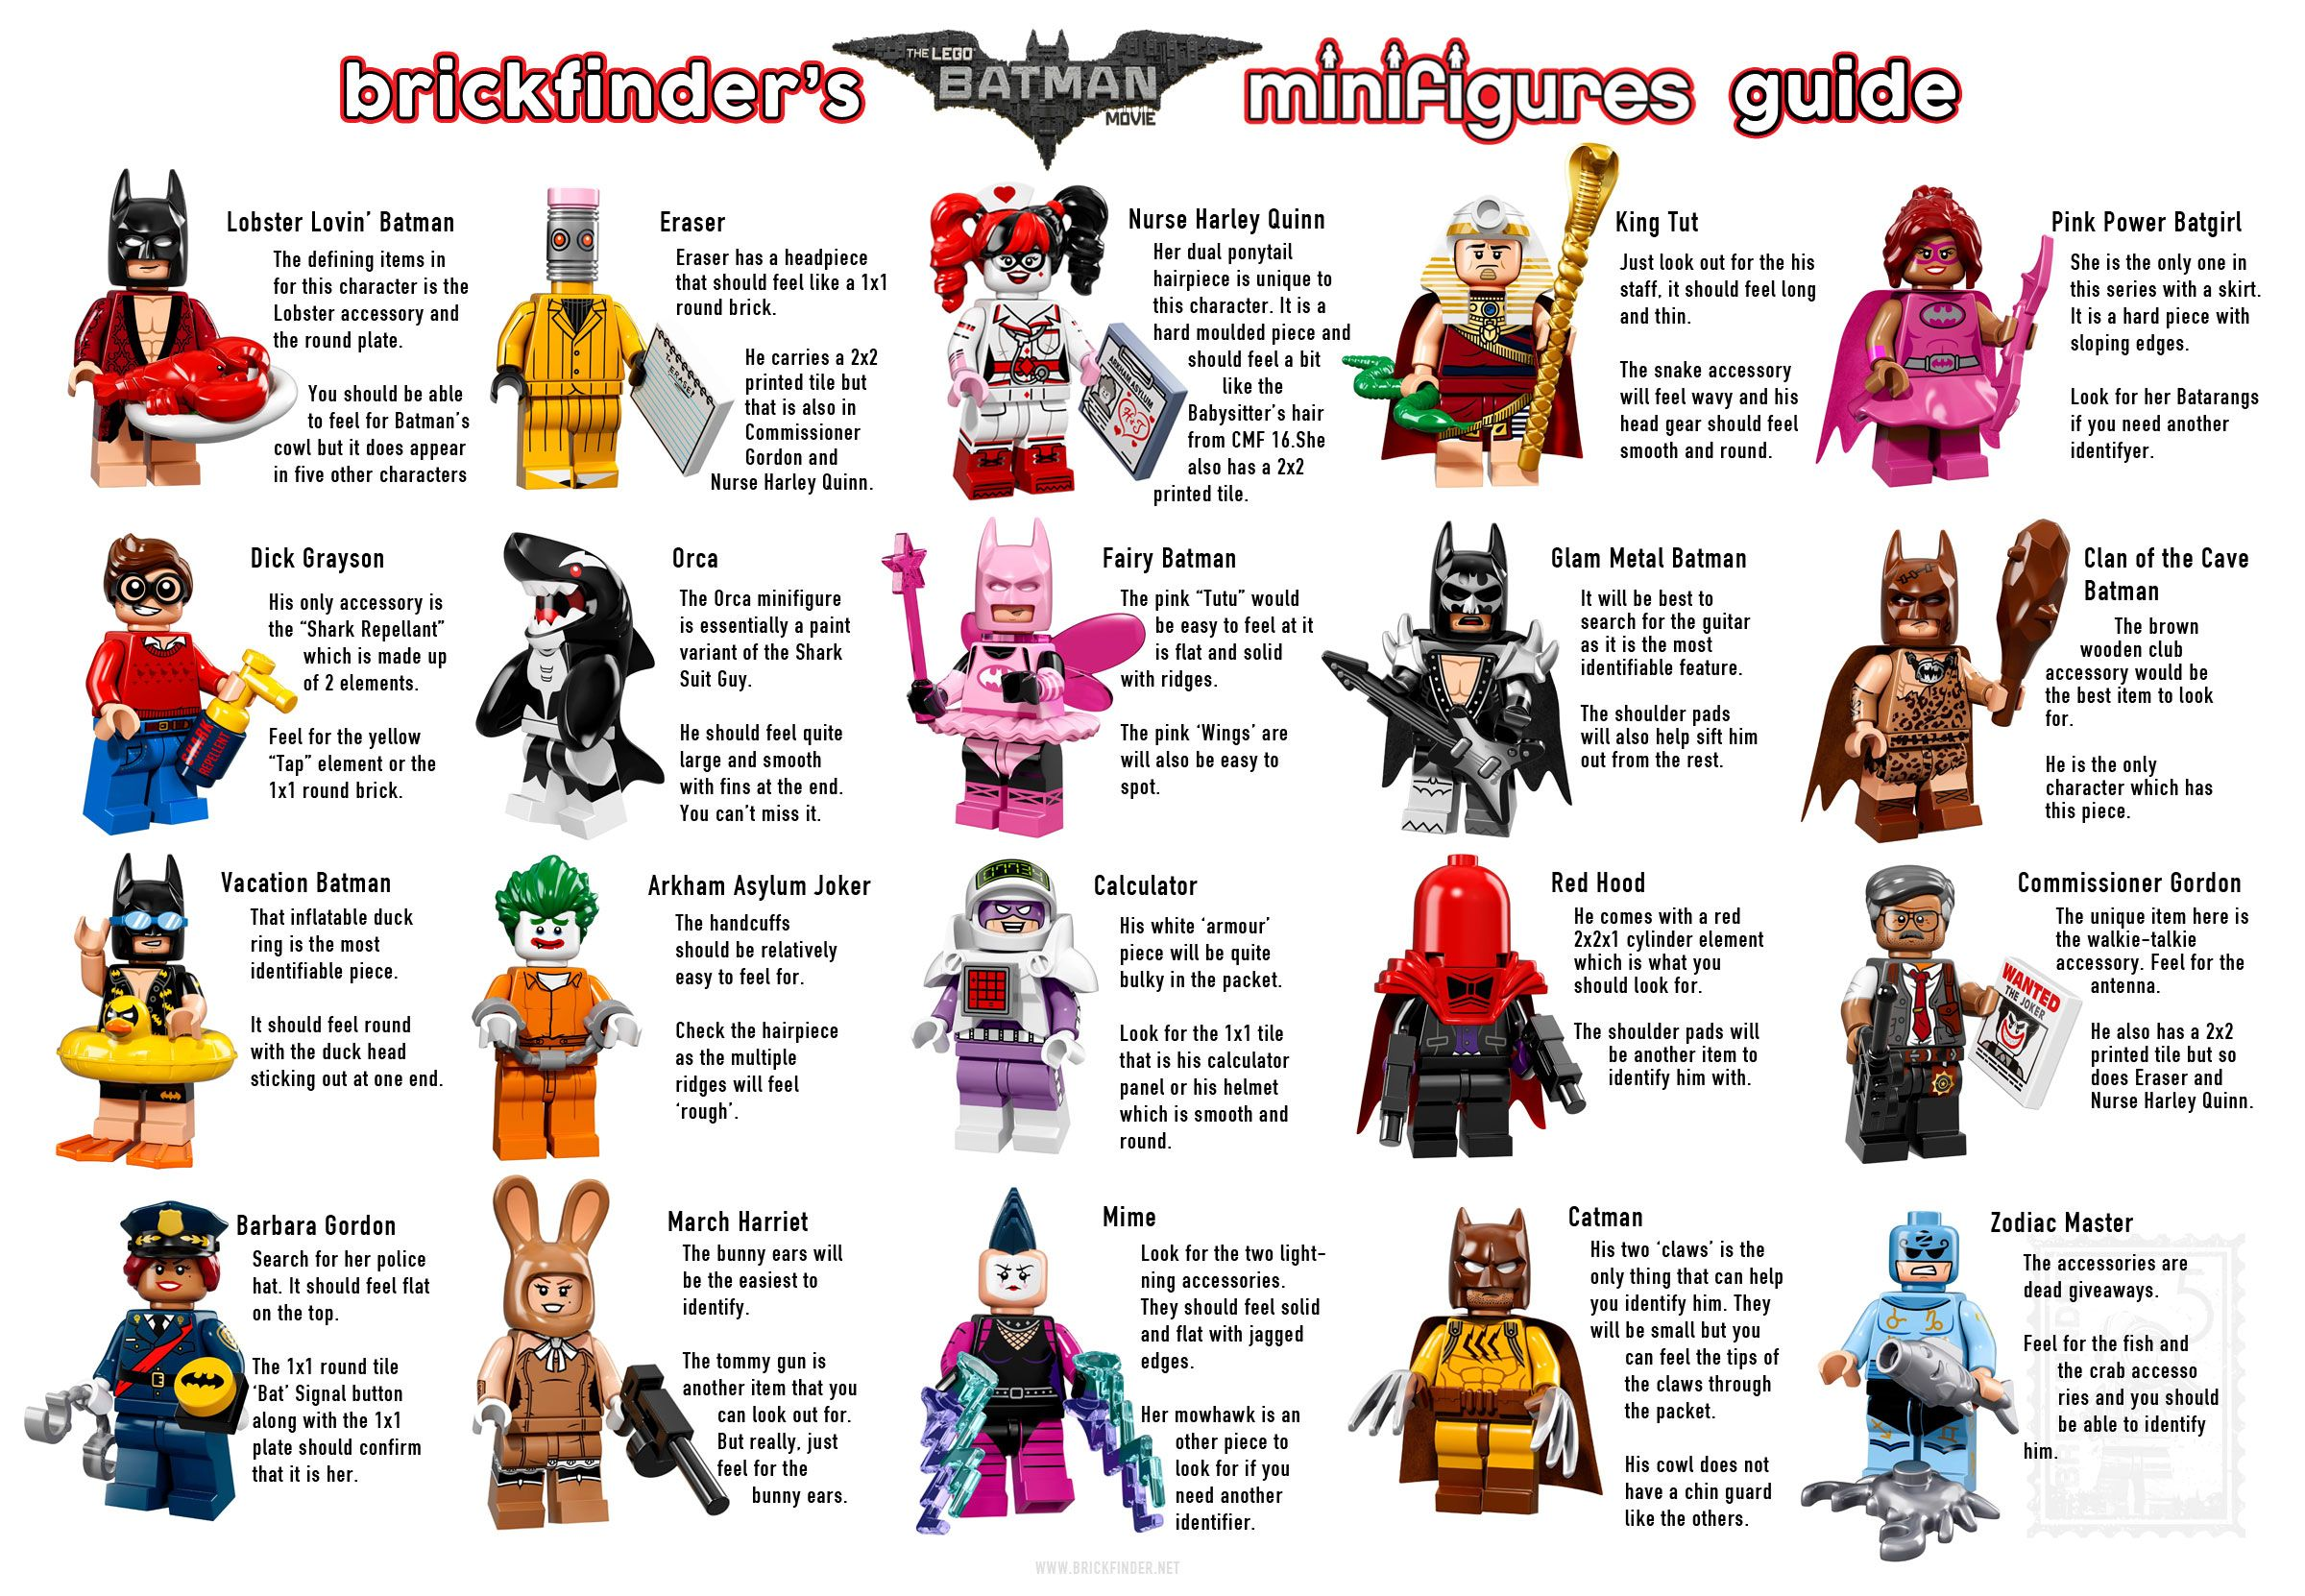 Here Is The Lego Batman Movie Minifigure Feel Guide To Help Anyone Who Is Trying To Identify The Differen Lego Batman Movie Lego Batman Minifigures Lego Batman